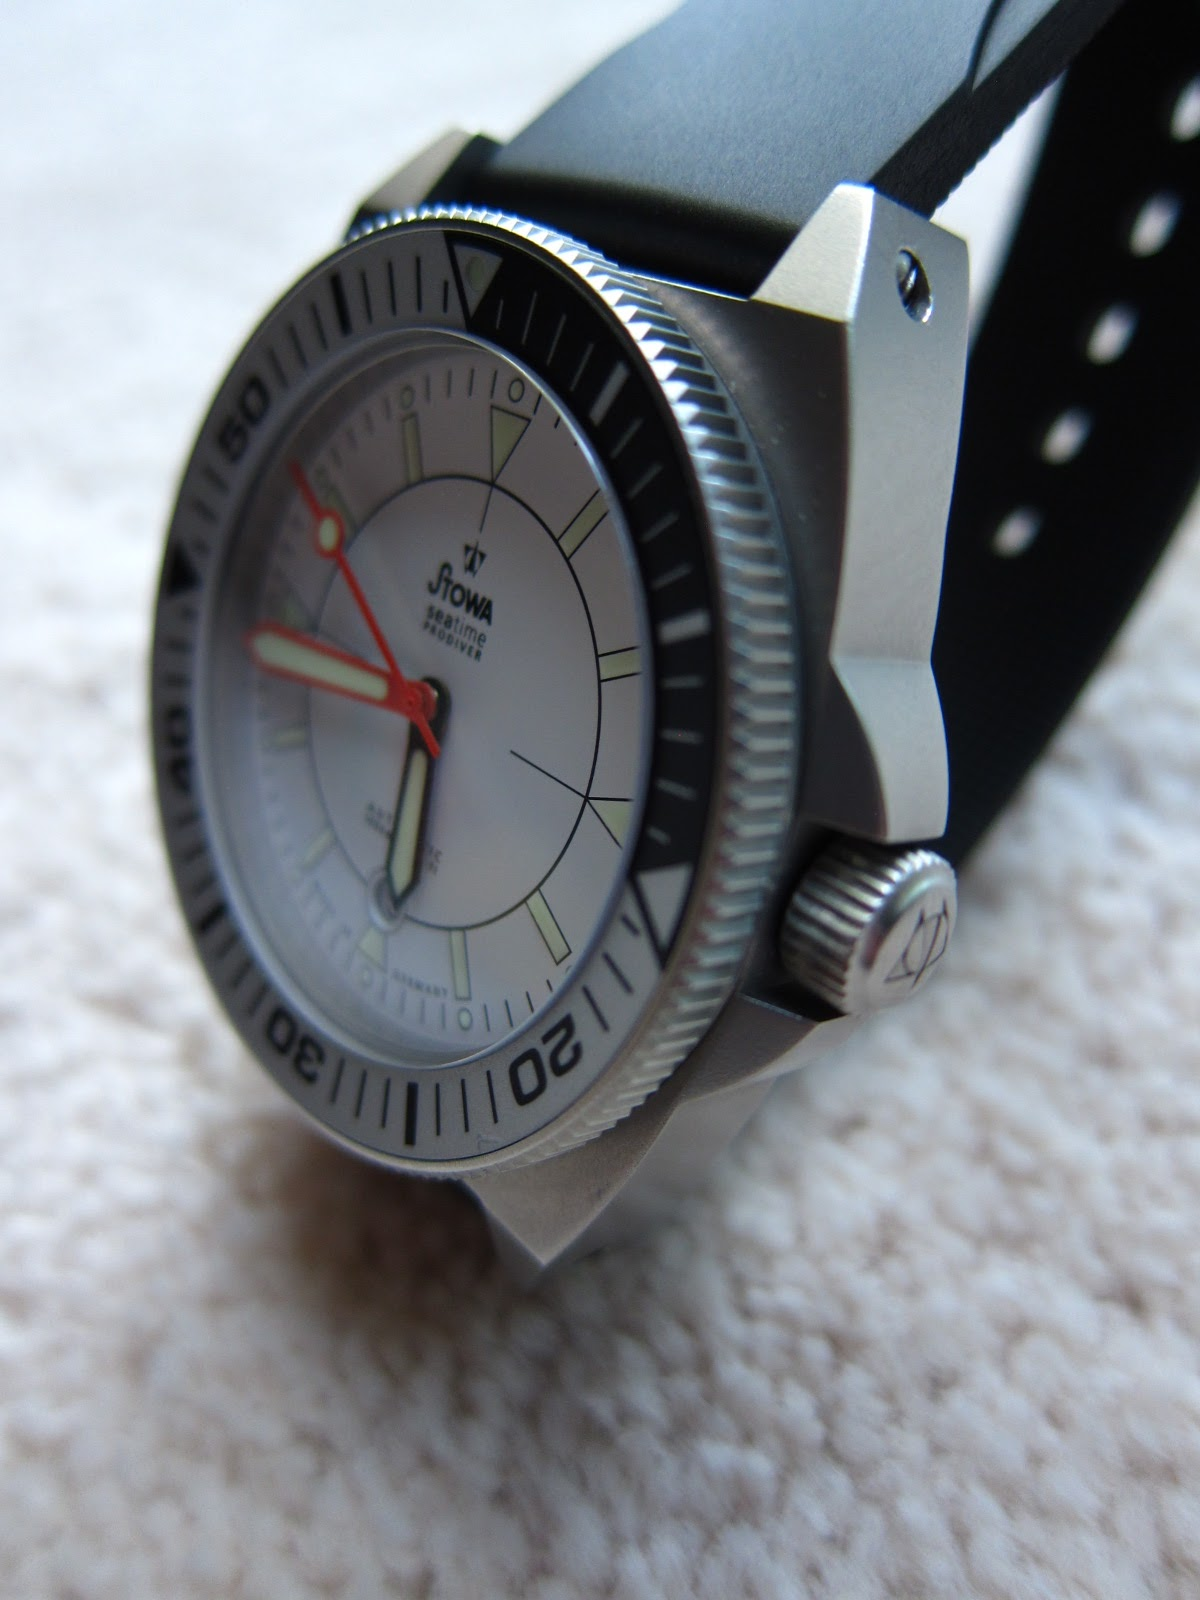 stowa this worn wound watches pro watch post schauer seadiver prodiver review from images seatime